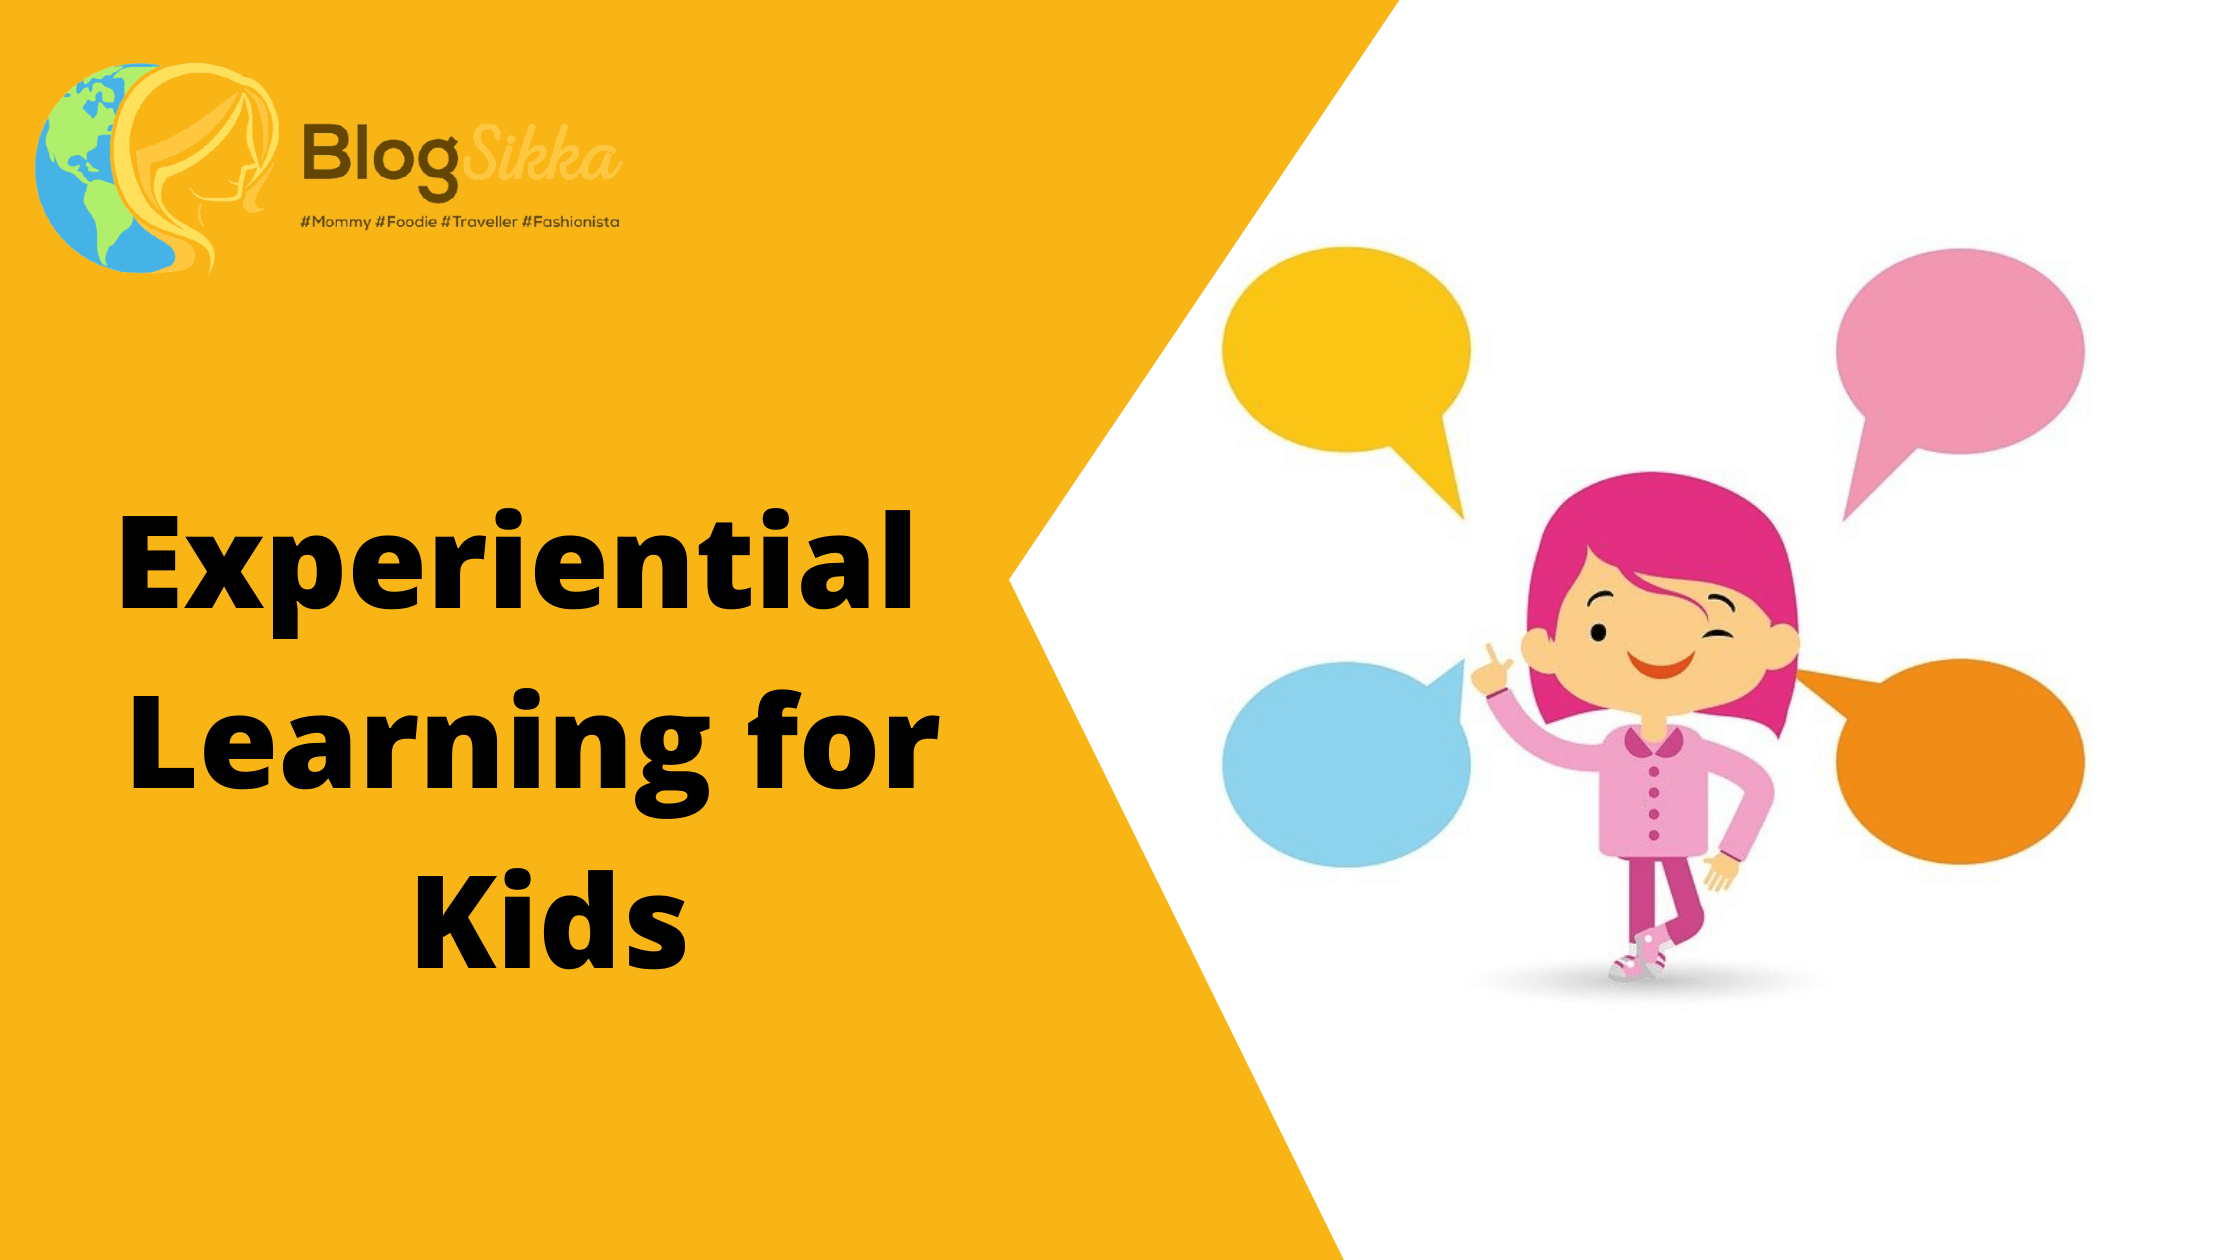 Experiential Learning for Kids